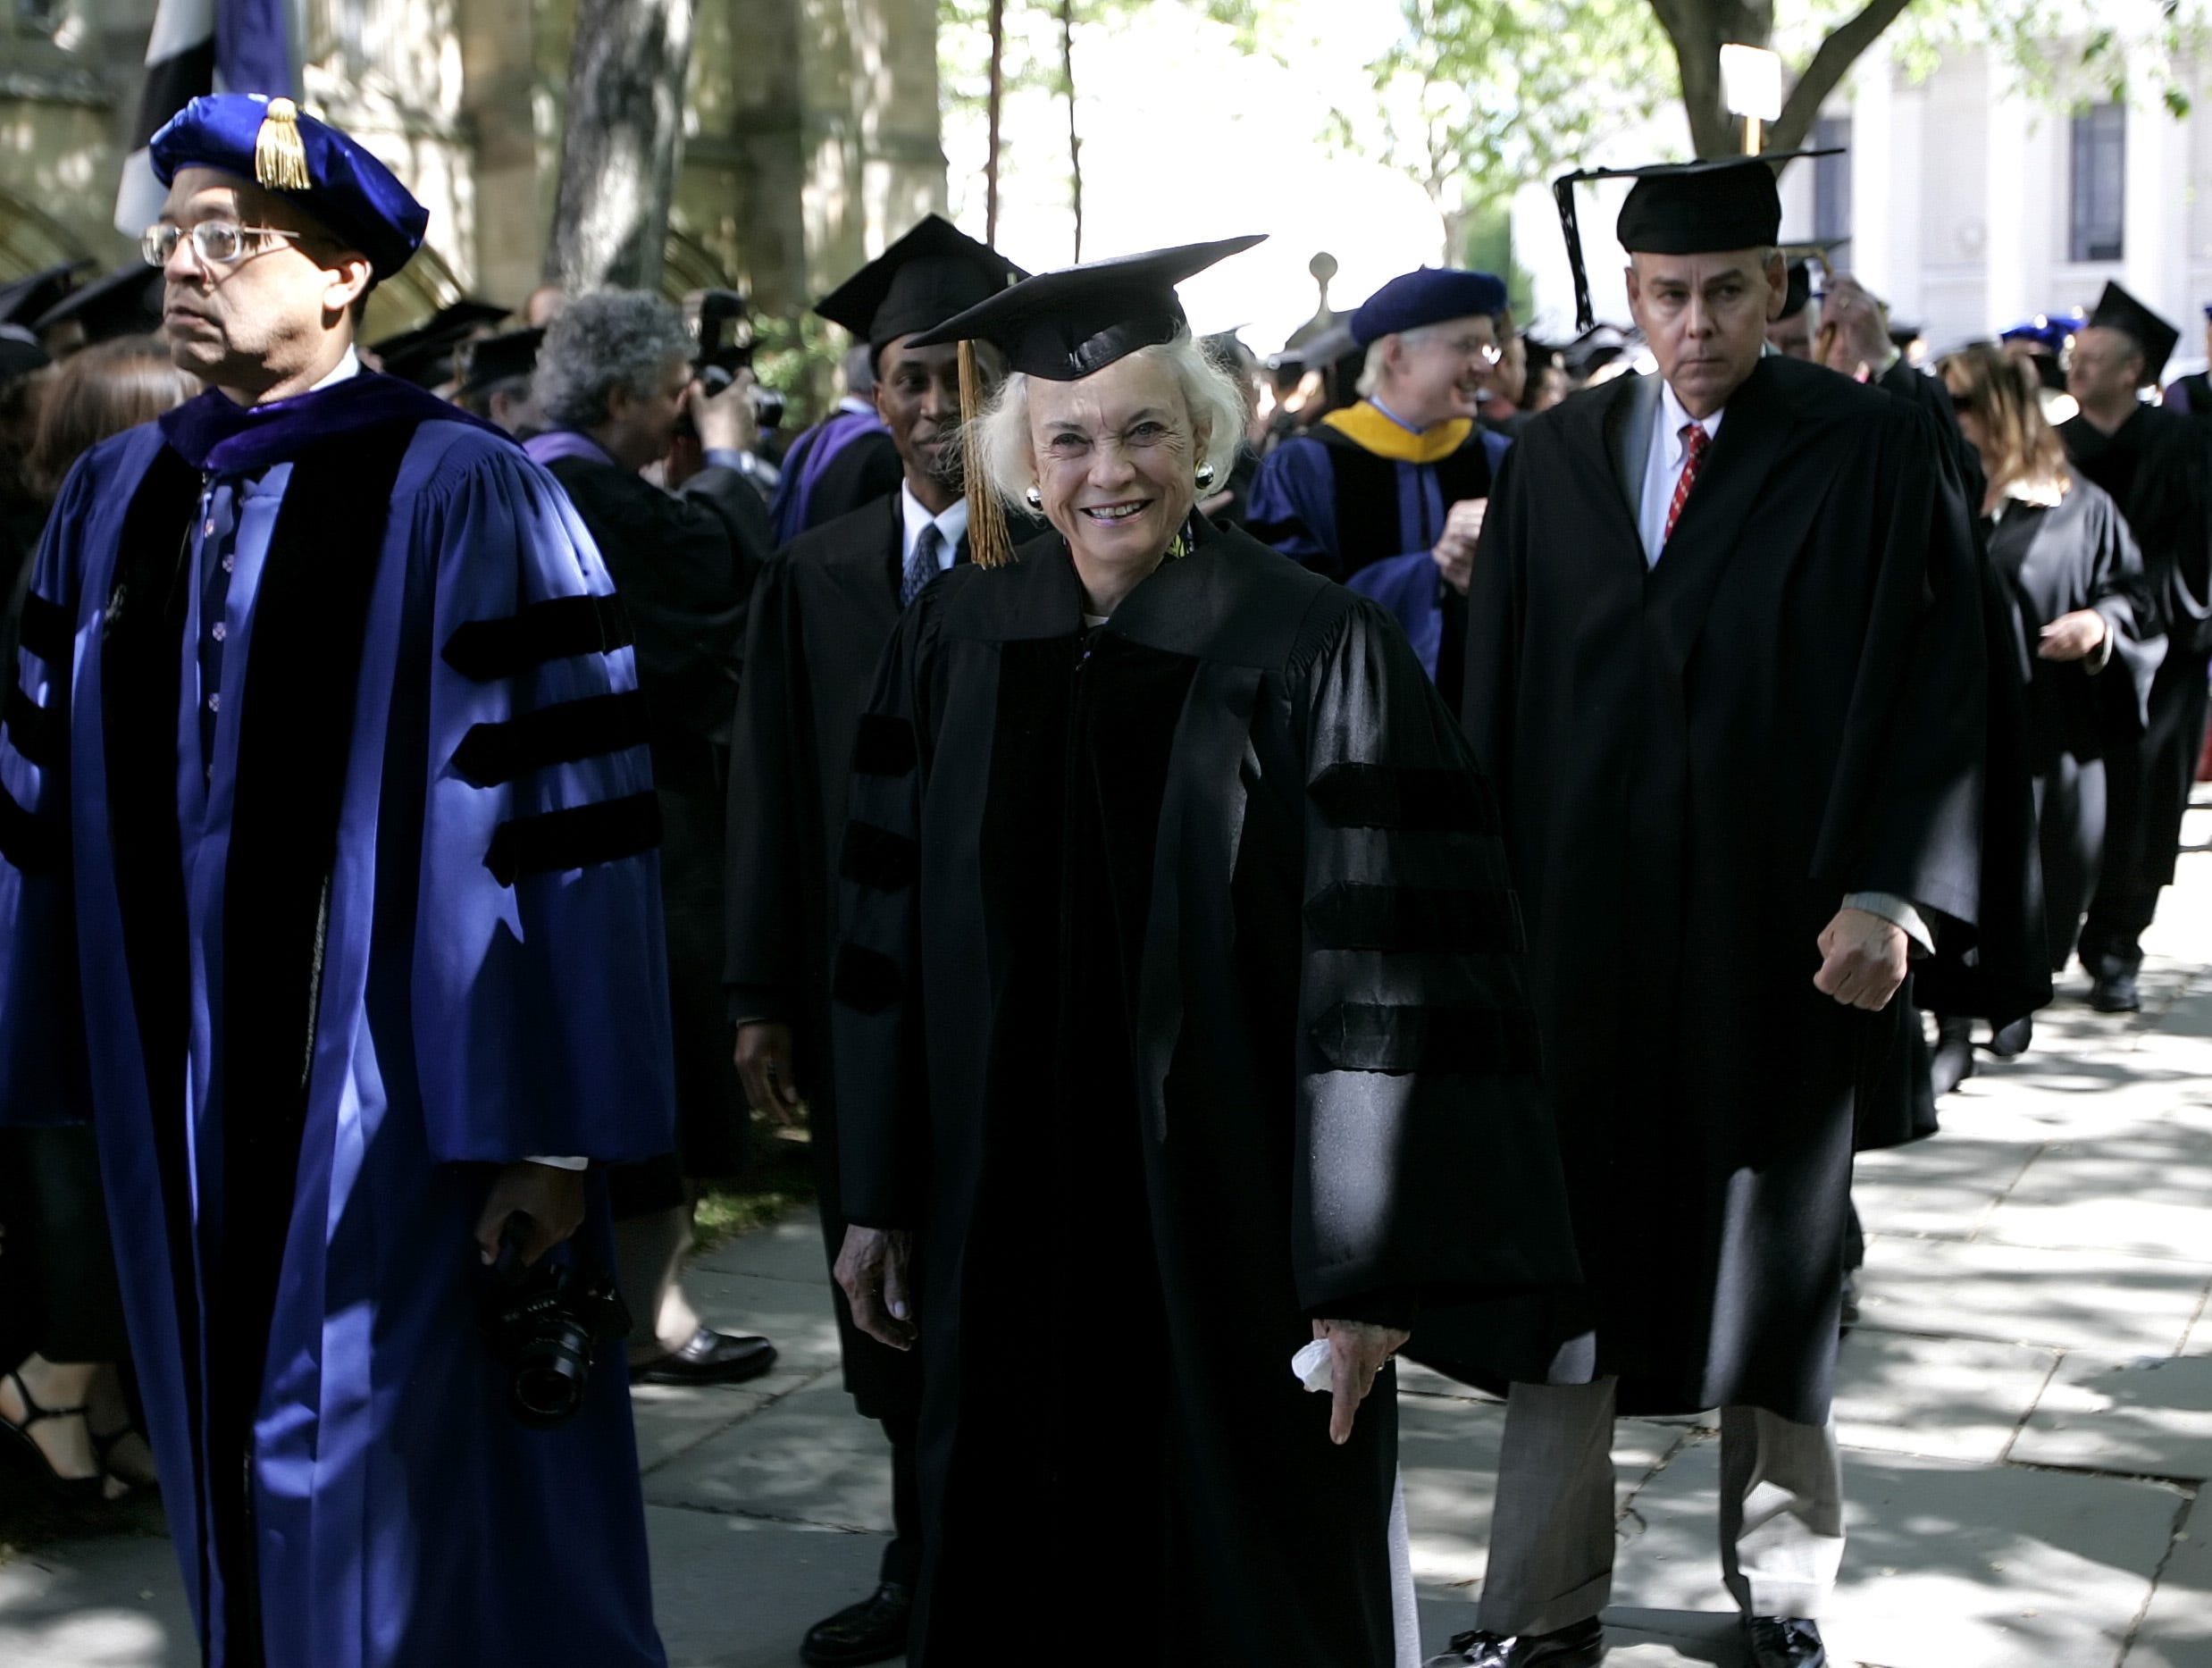 Retired U.S. Supreme Court Justice Sandra Day O'Connor, center, smiles as she walks in the academic procession on the campus at Yale University in New Haven, Conn., Monday, May 22, 2006. O'Connor was awarded an honorary Doctor of Laws degree.